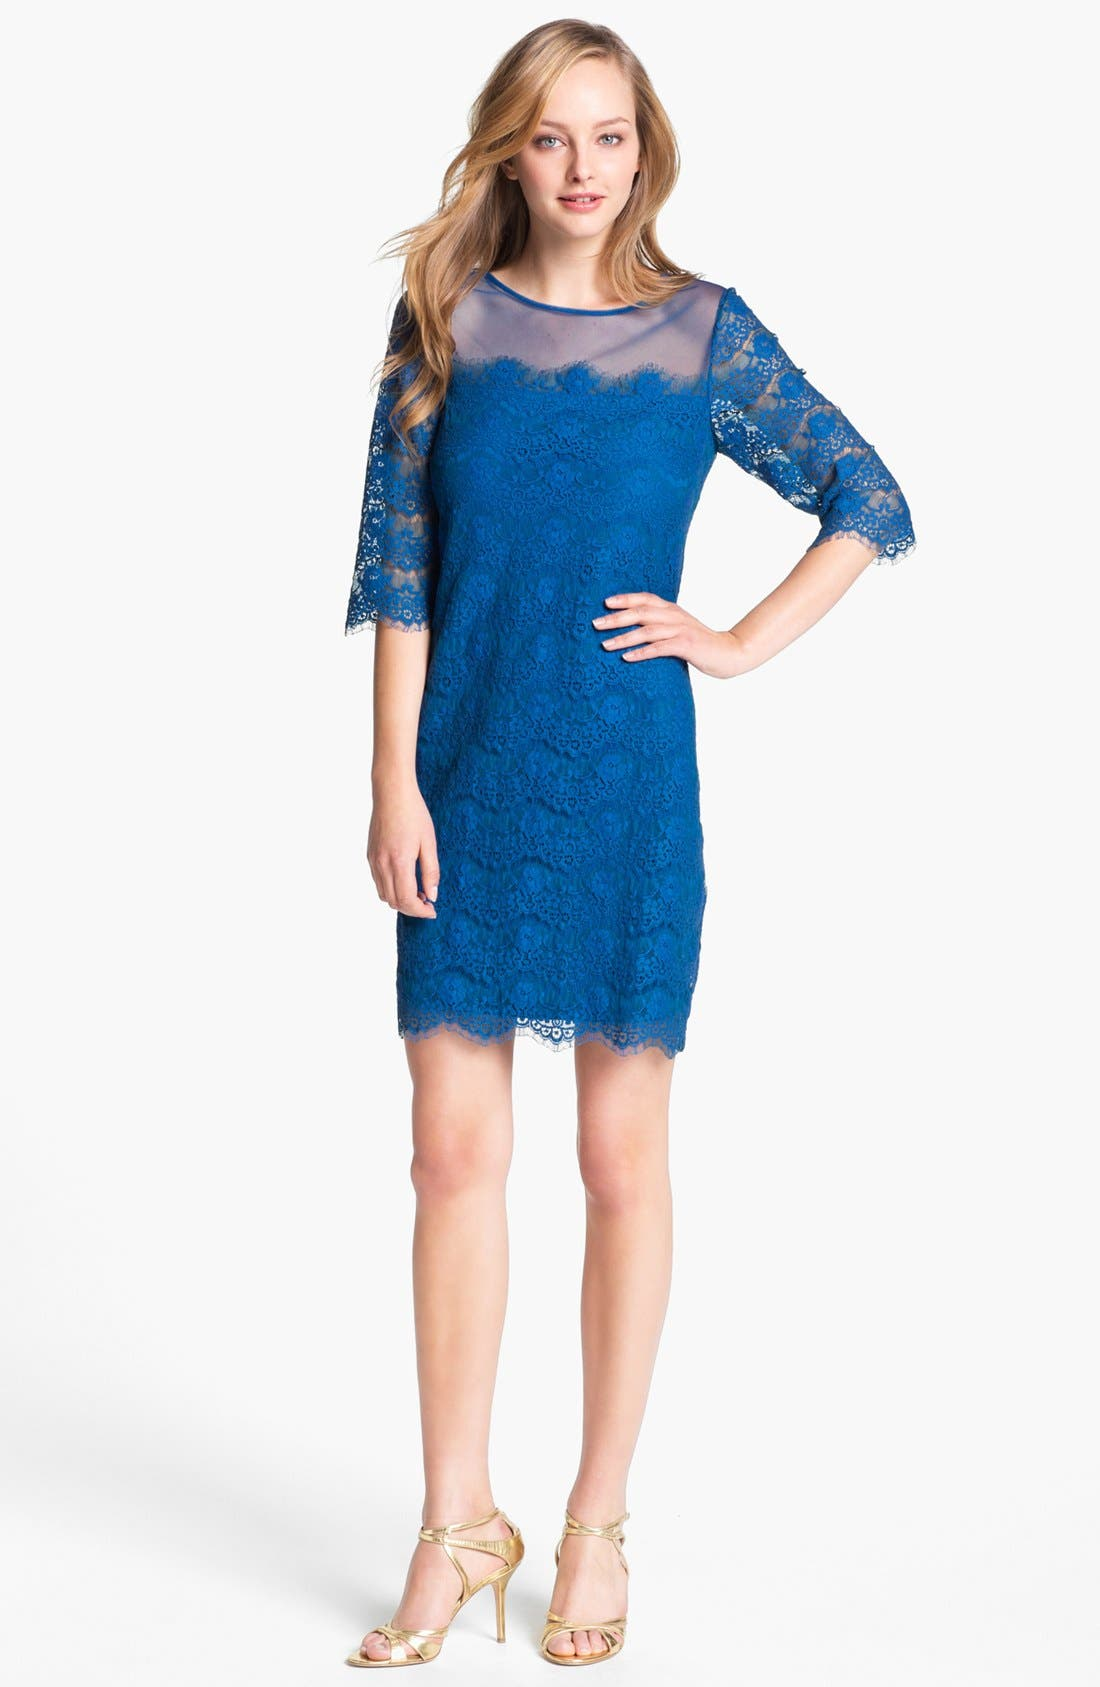 Main Image - Max & Cleo 'Lillian' Scalloped Lace Minidress